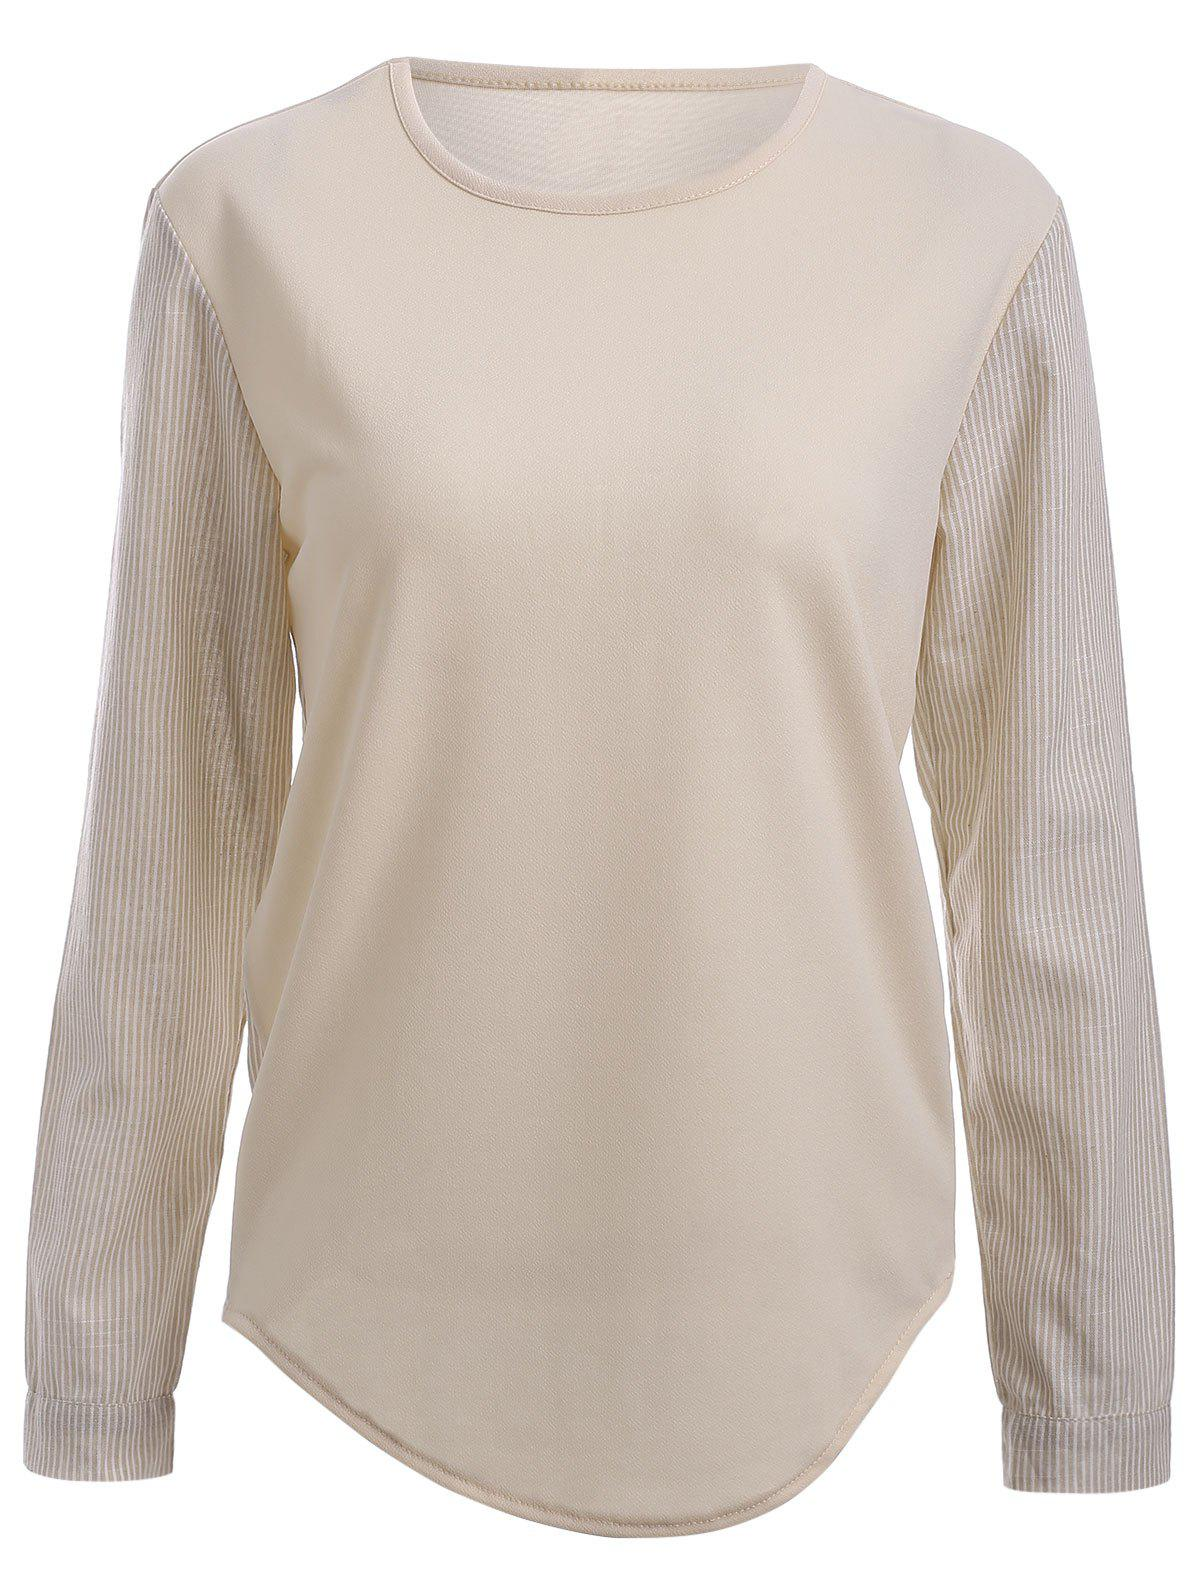 Two-Tone Cream Long Sleeves High Low T-Shirt - APRICOT 2XL